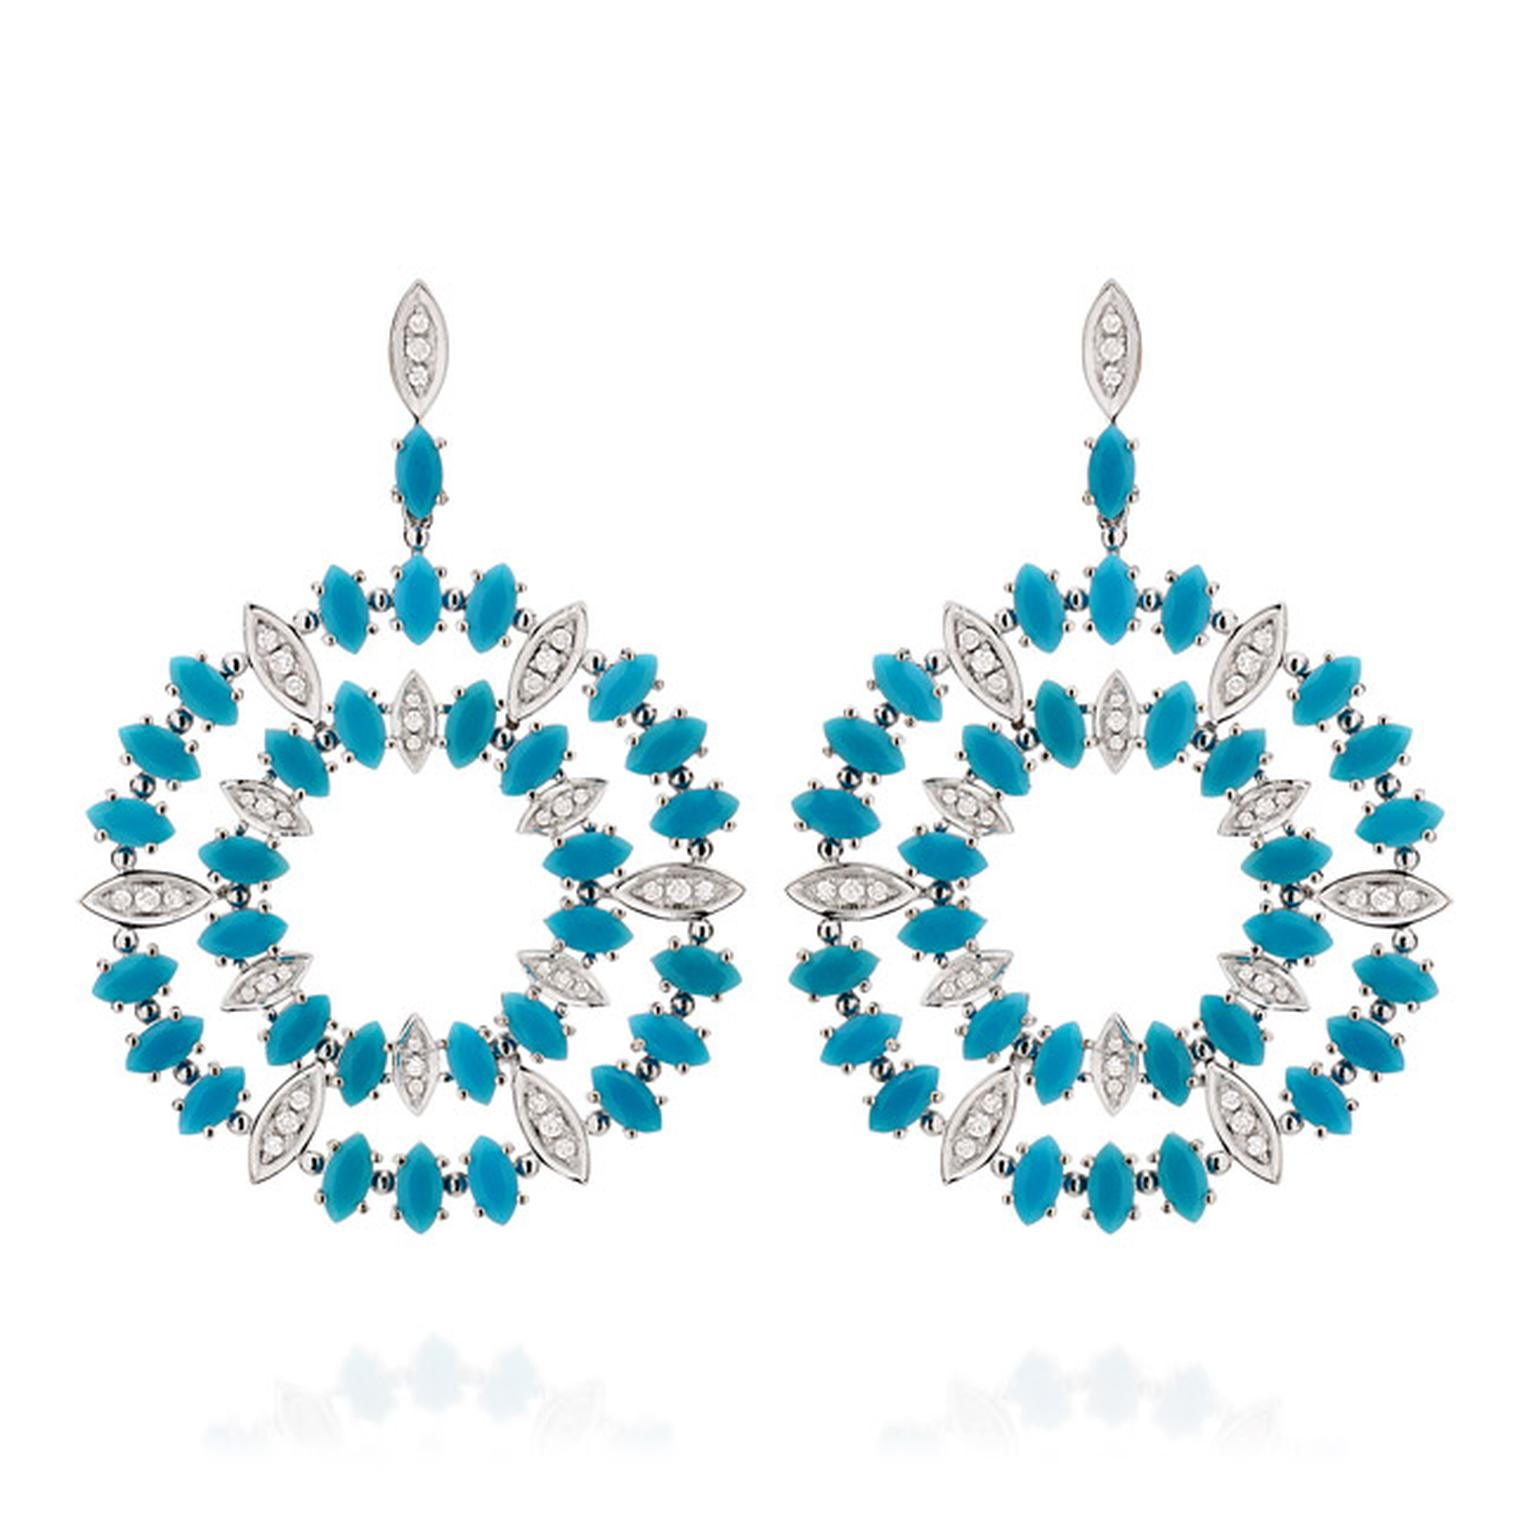 Carla-Amorim-Aquario-earrings-Main